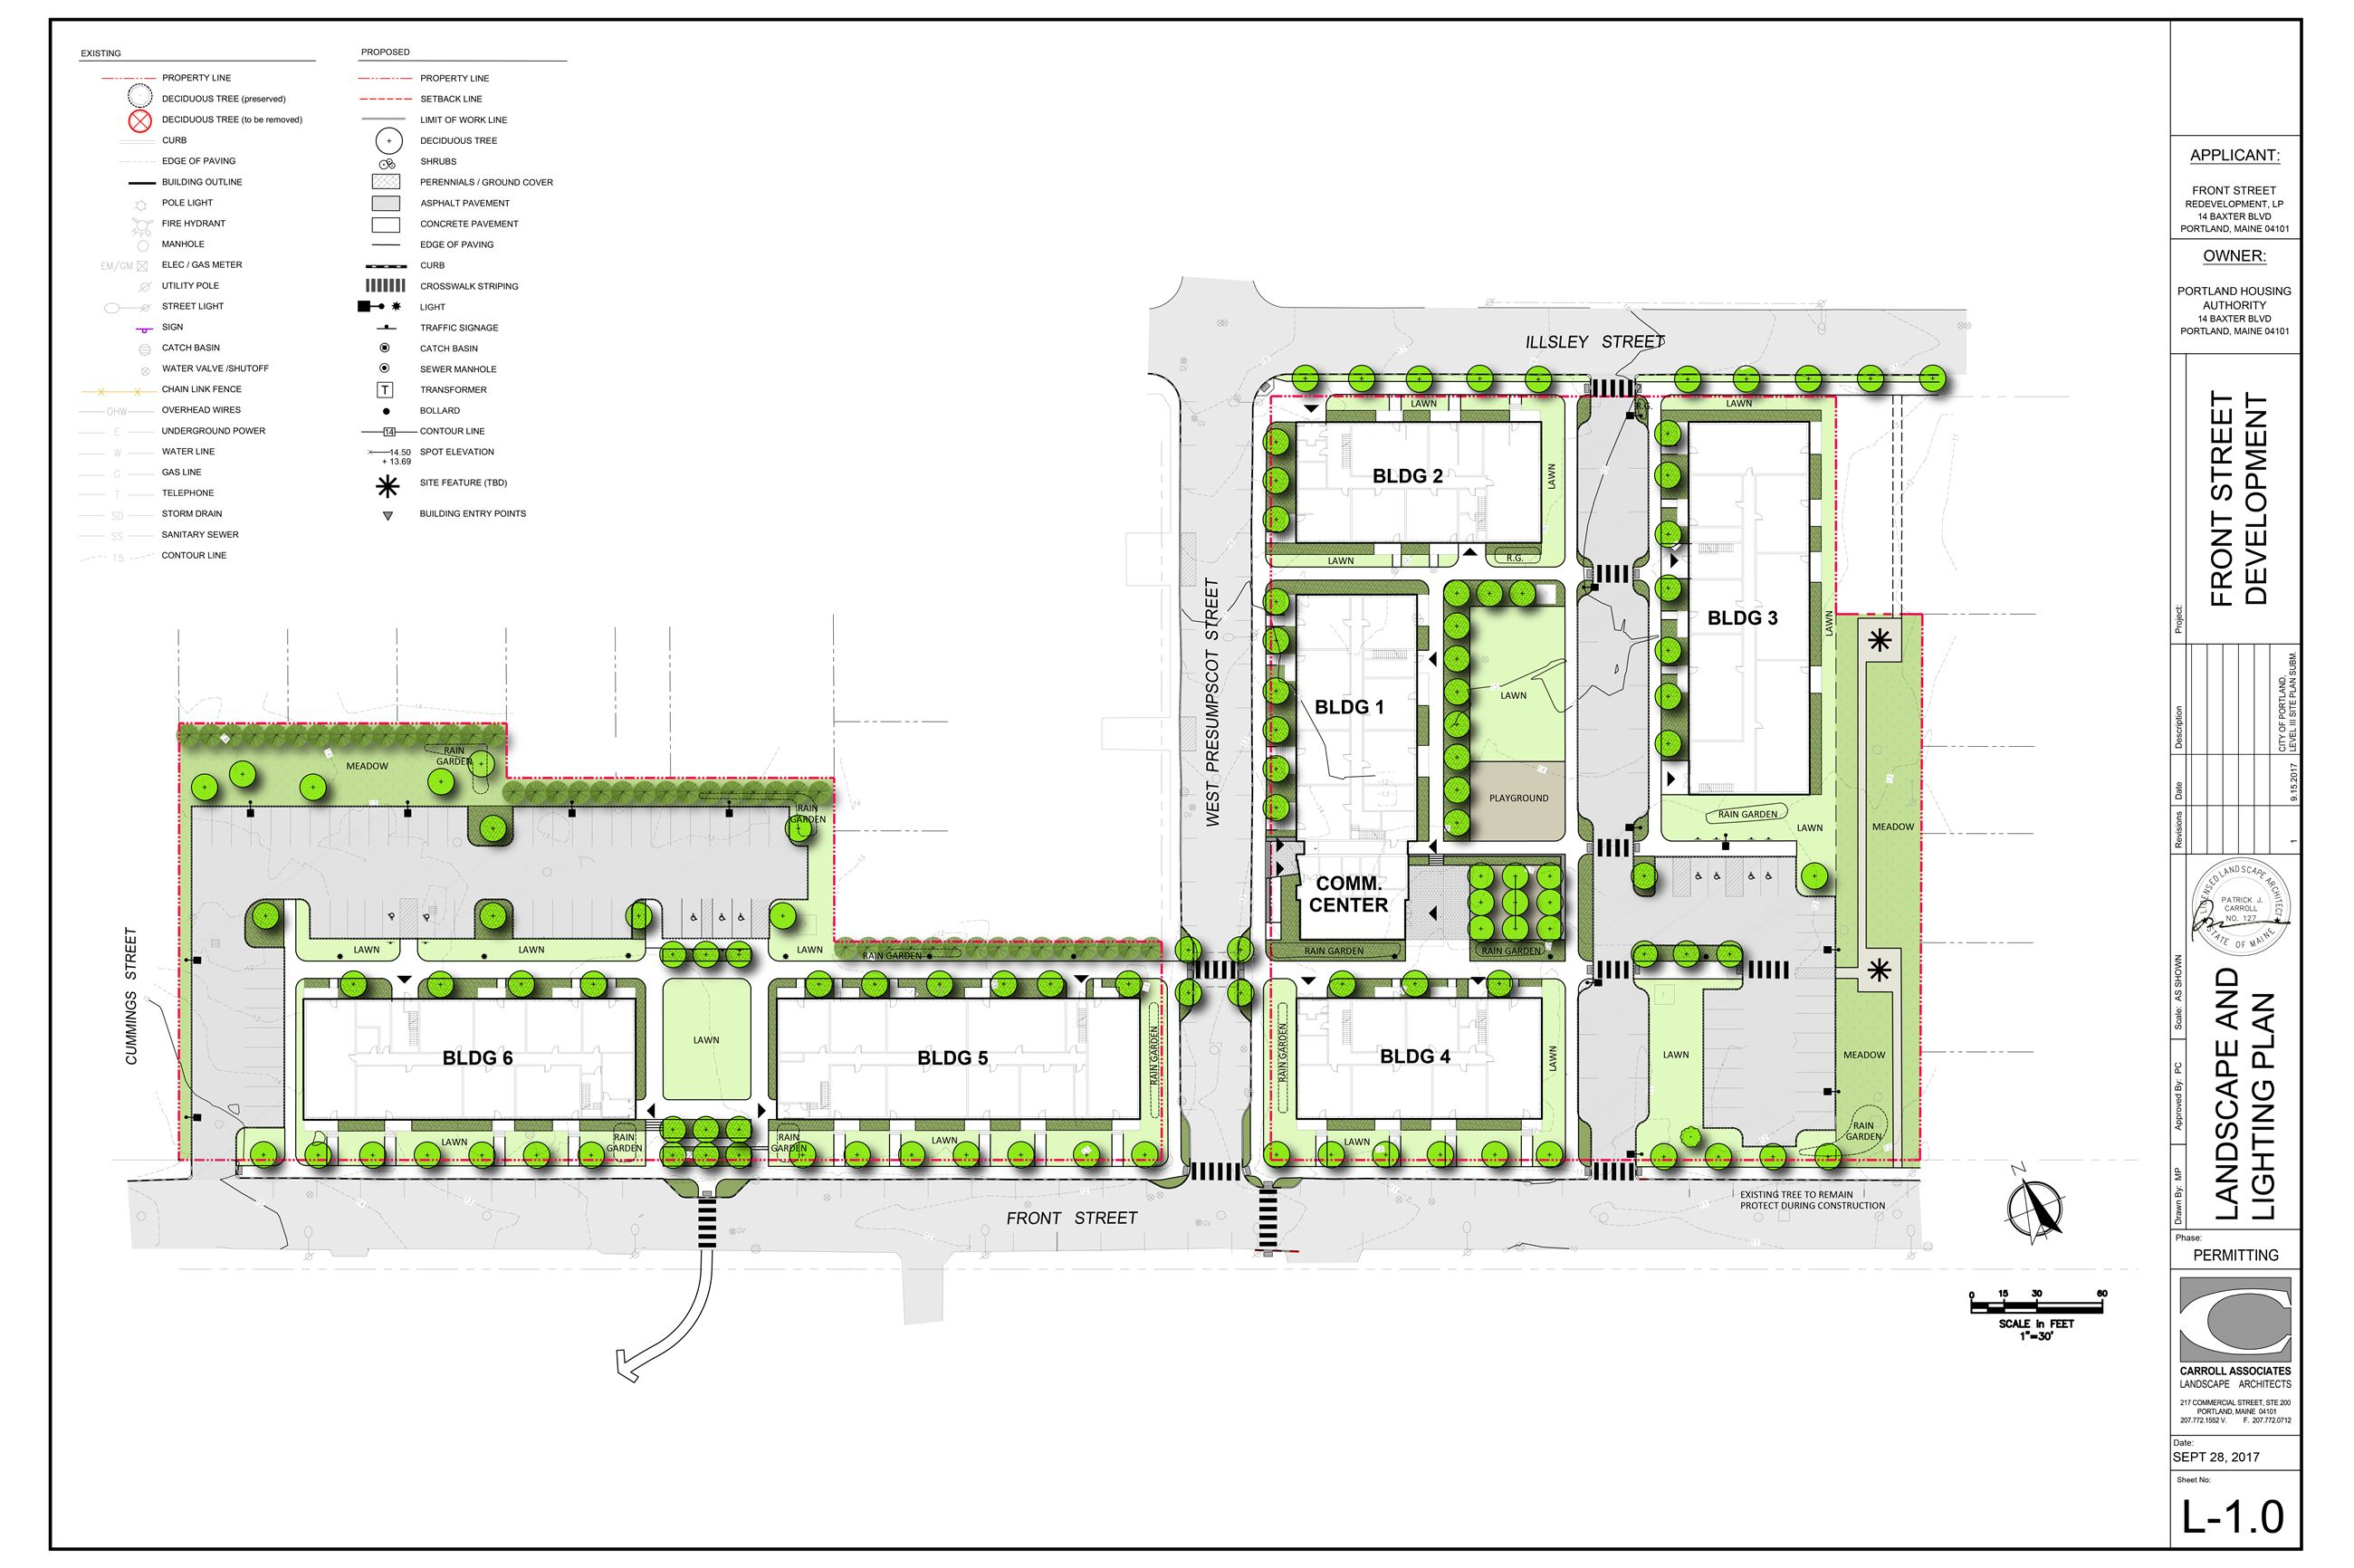 Front Street Rendered Plan